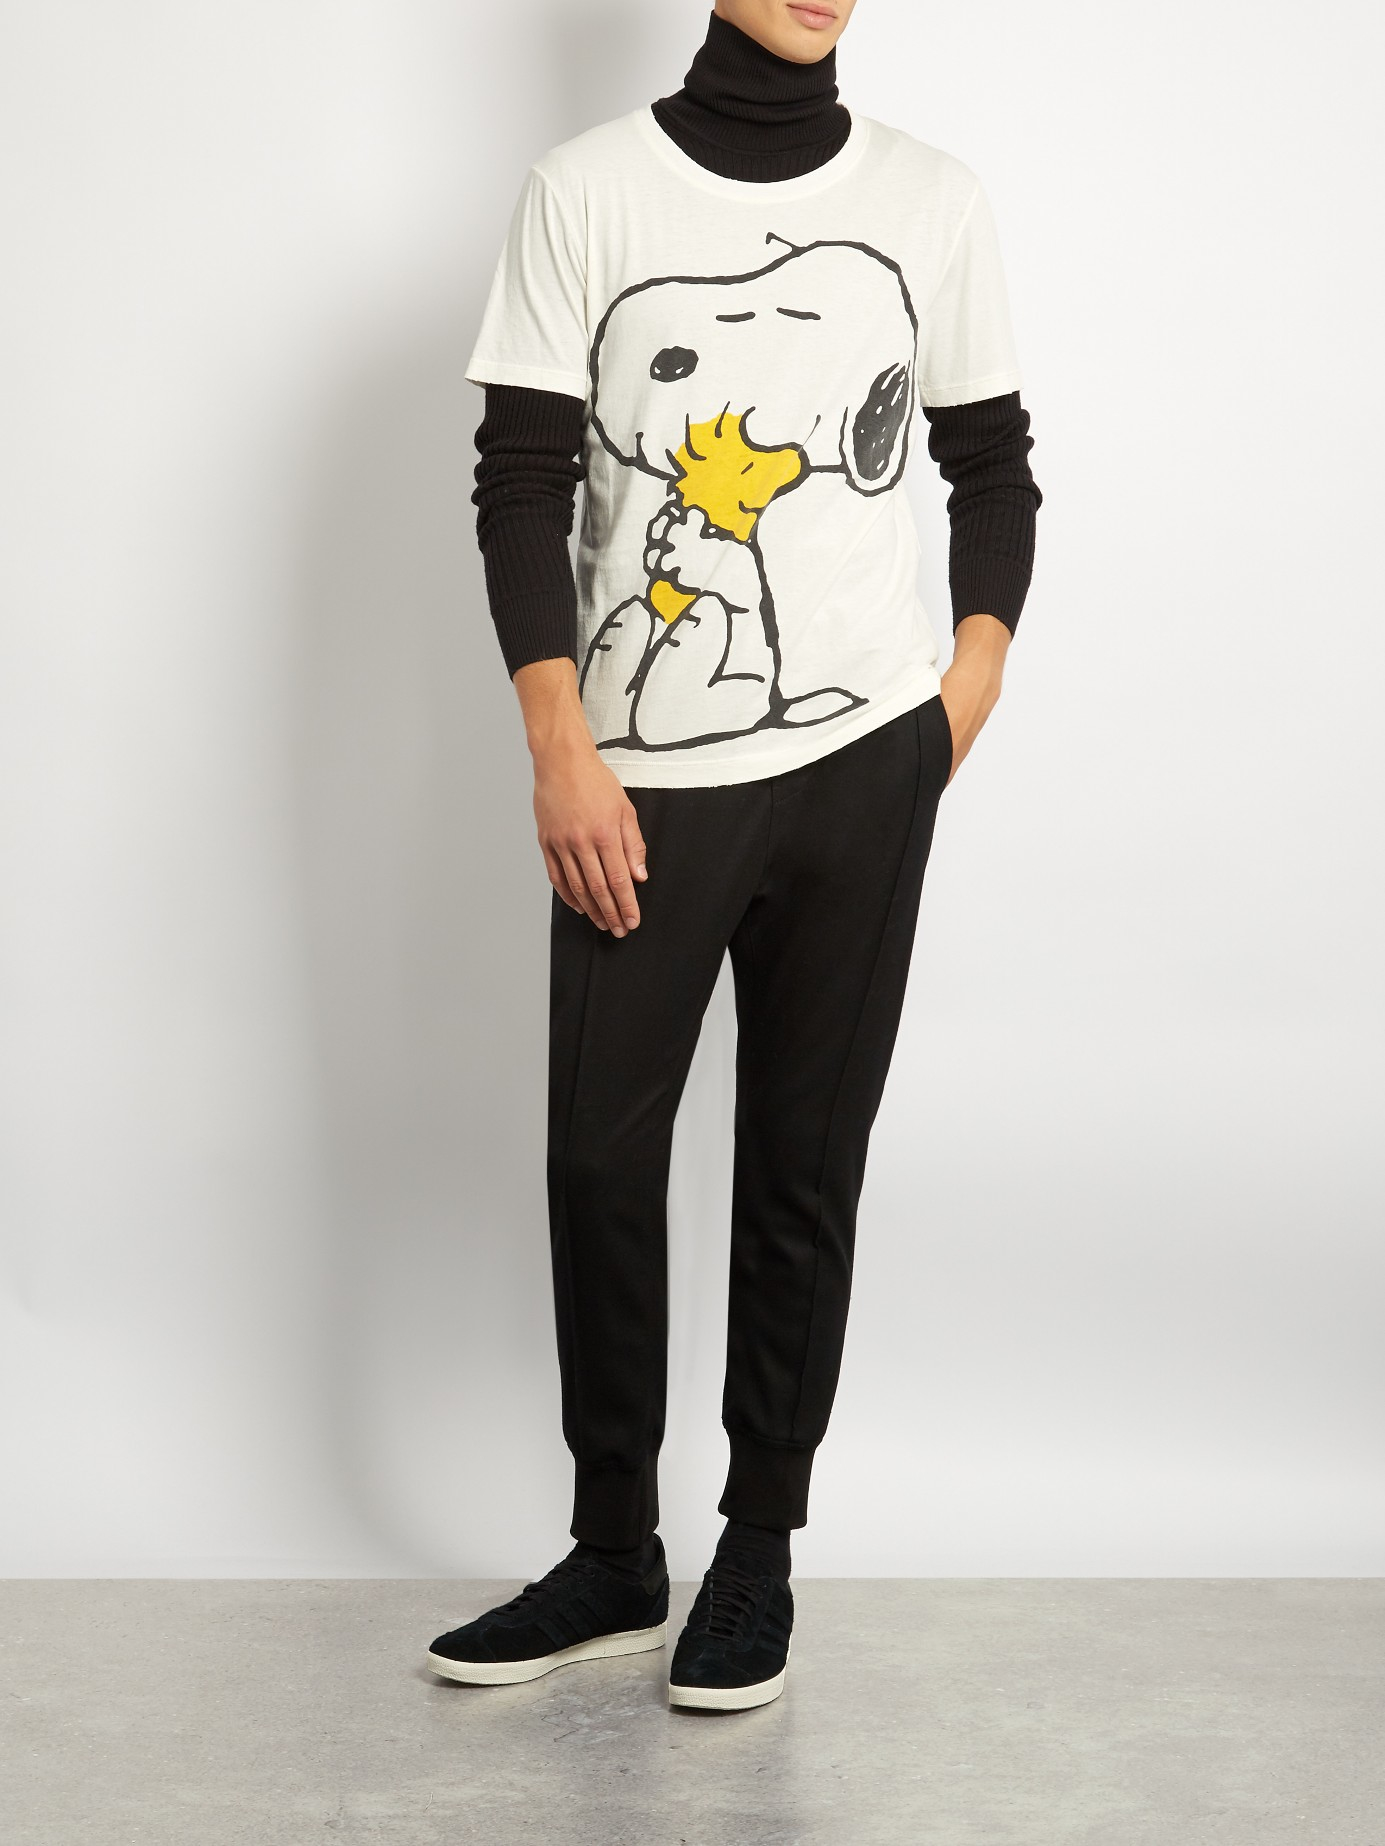 3526a5d0 Gucci Snoopy And Woodstock-print Cotton T-shirt for Men - Lyst